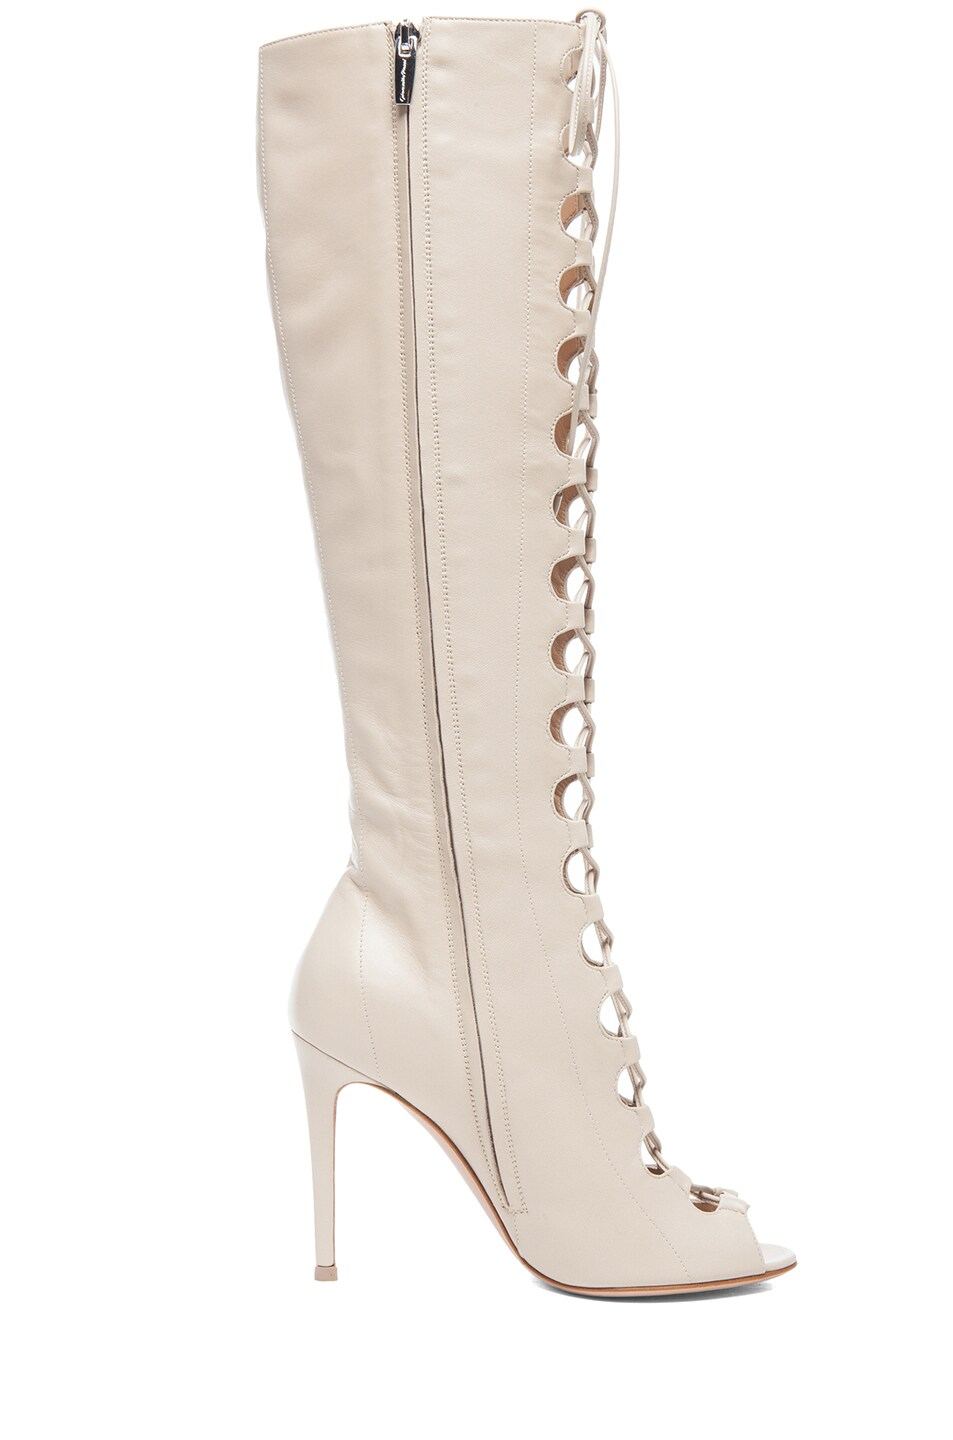 Image 5 of Gianvito Rossi Nappa Leather Lace Up Boots in Corda